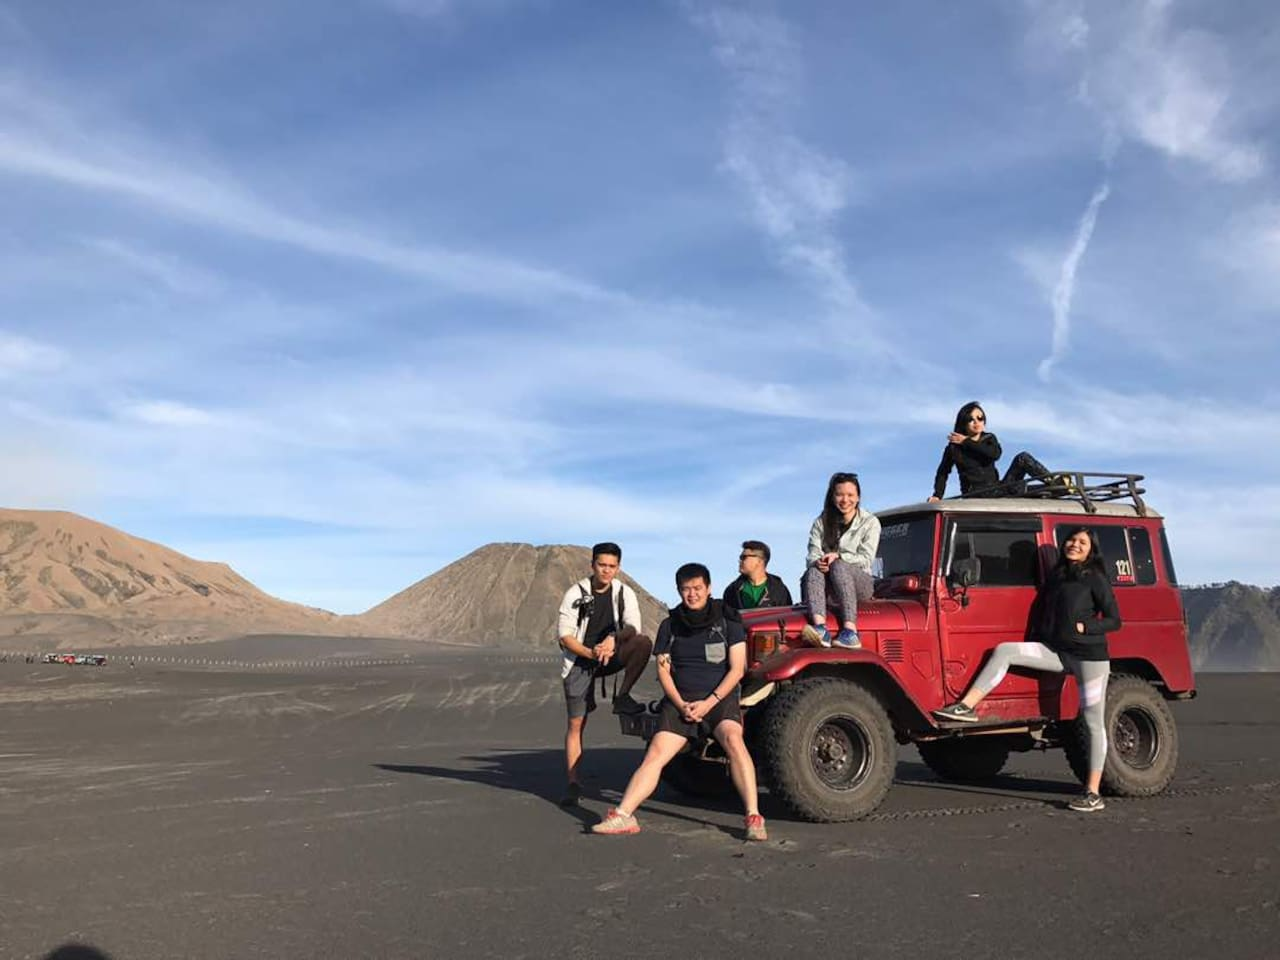 Mount Bromo Ijen Volcano tour 3 Days 2 Night finish ferry Port to Bali